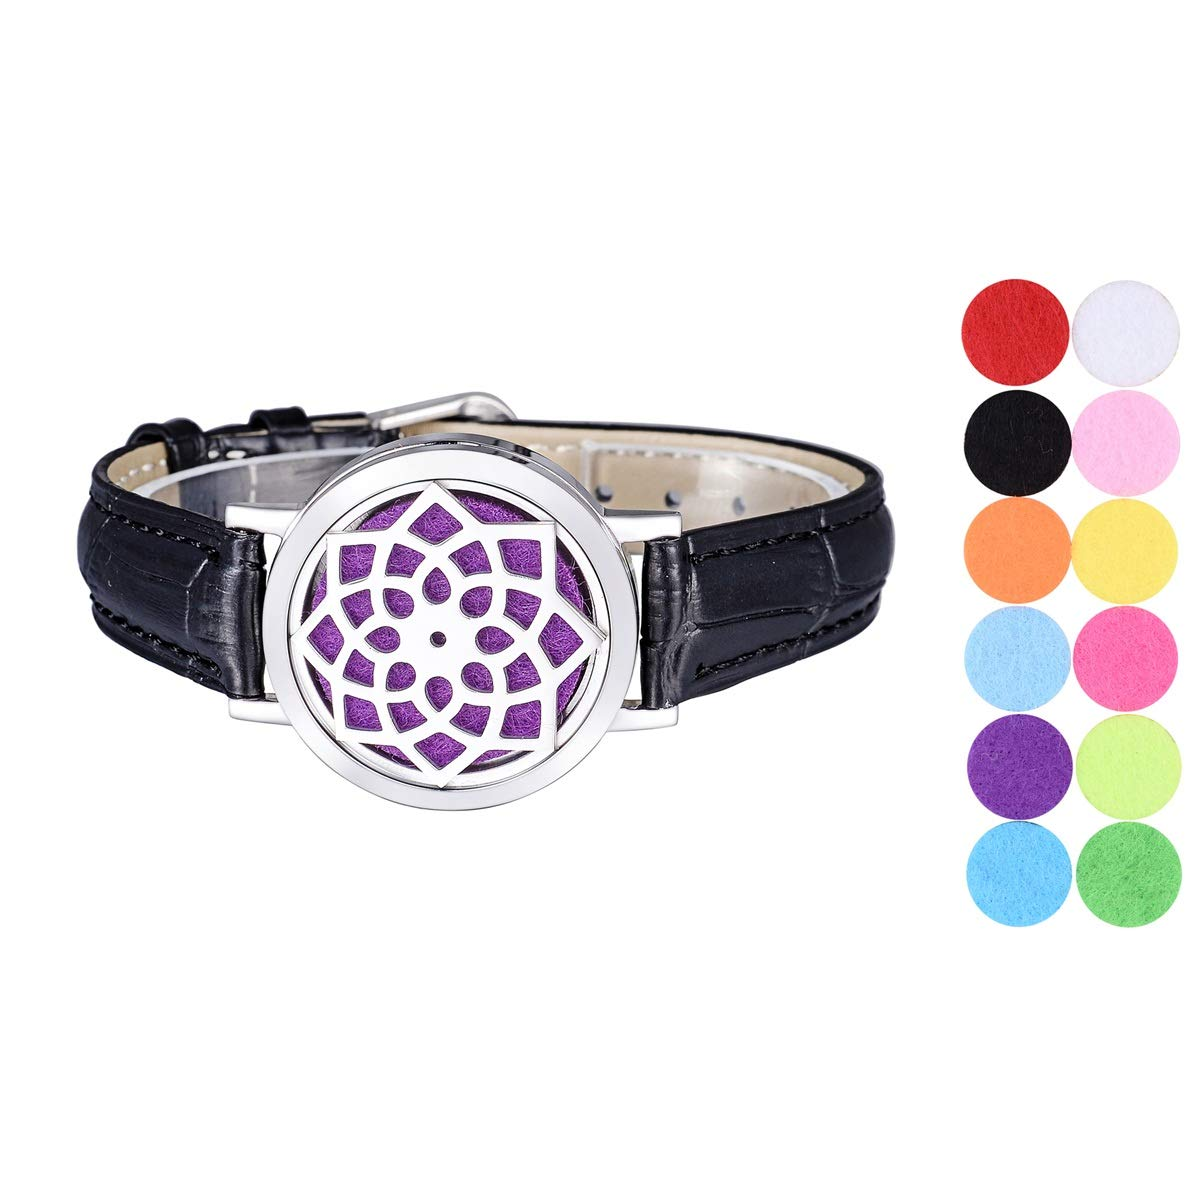 SG Aromatherapy Essential Oil Diffuser Bracelet Stainless Steel Locket Bangle PU Leather Band 12 Refill Pads